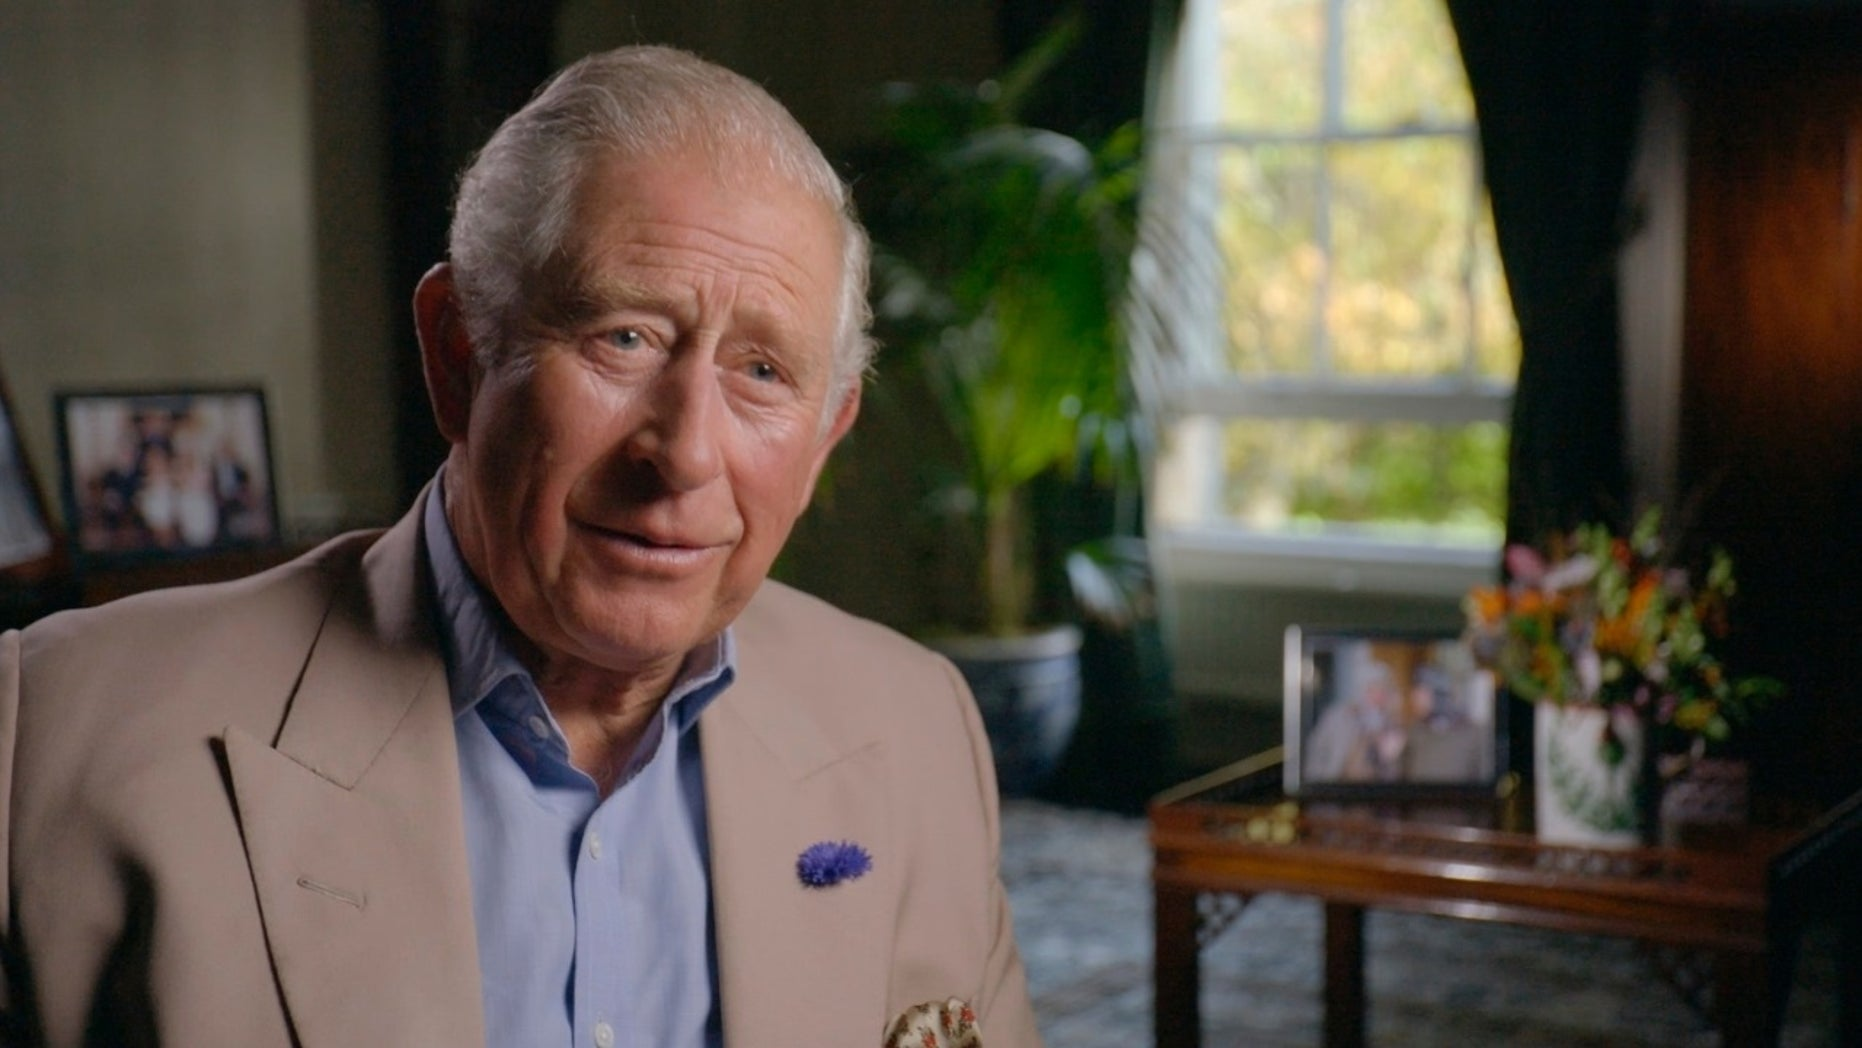 Prince Charles said he would keep his views to himself when he is king.